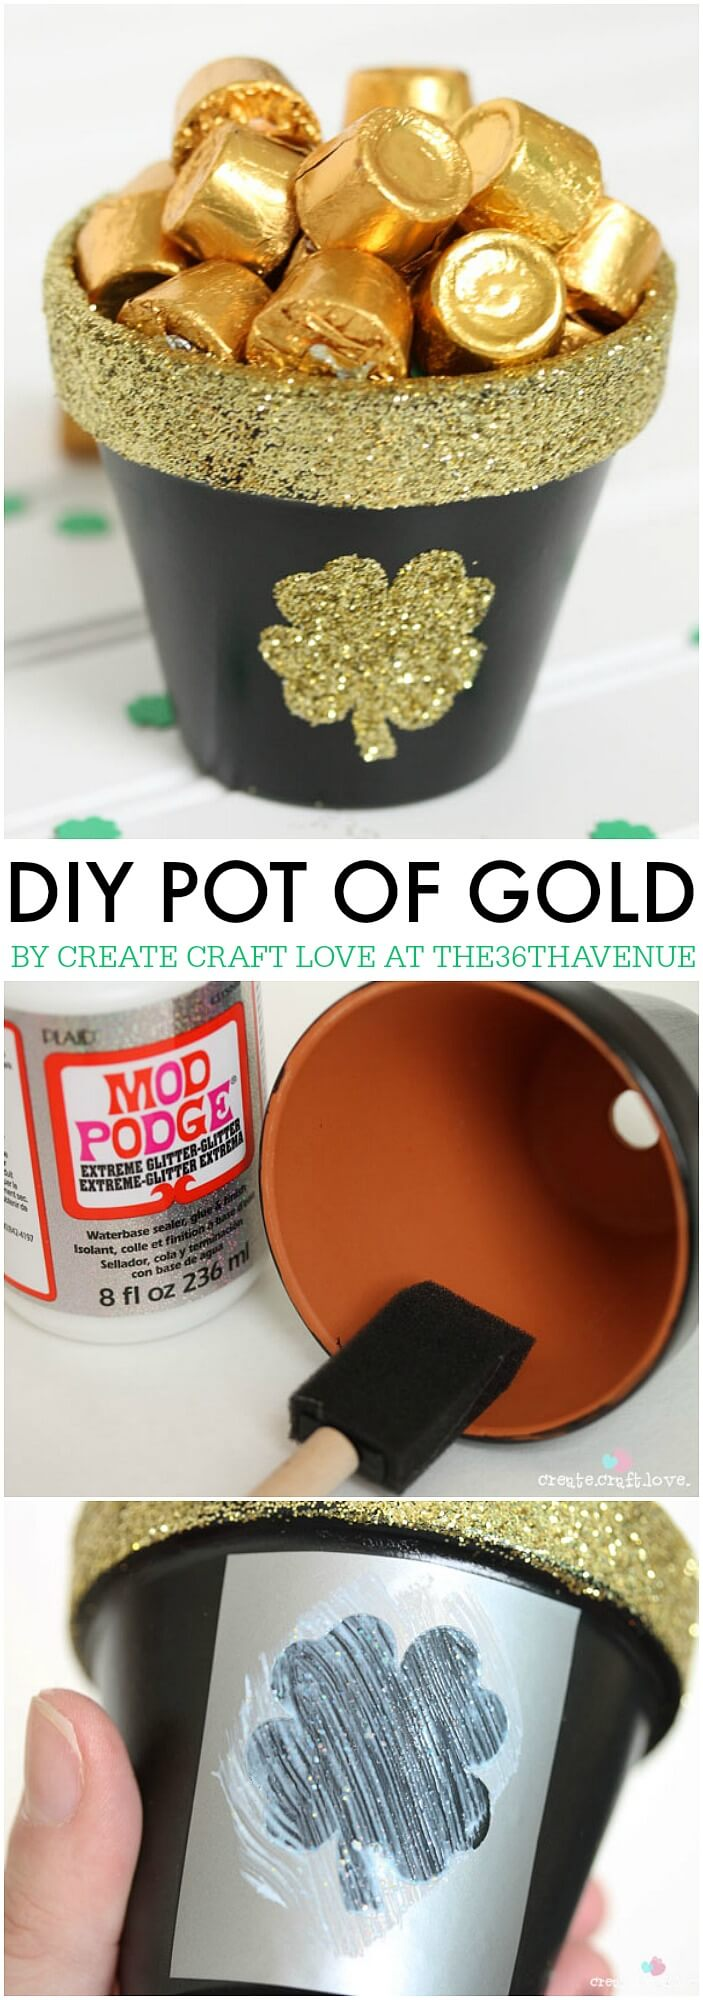 Terra Cotta Pot of Gold Craft